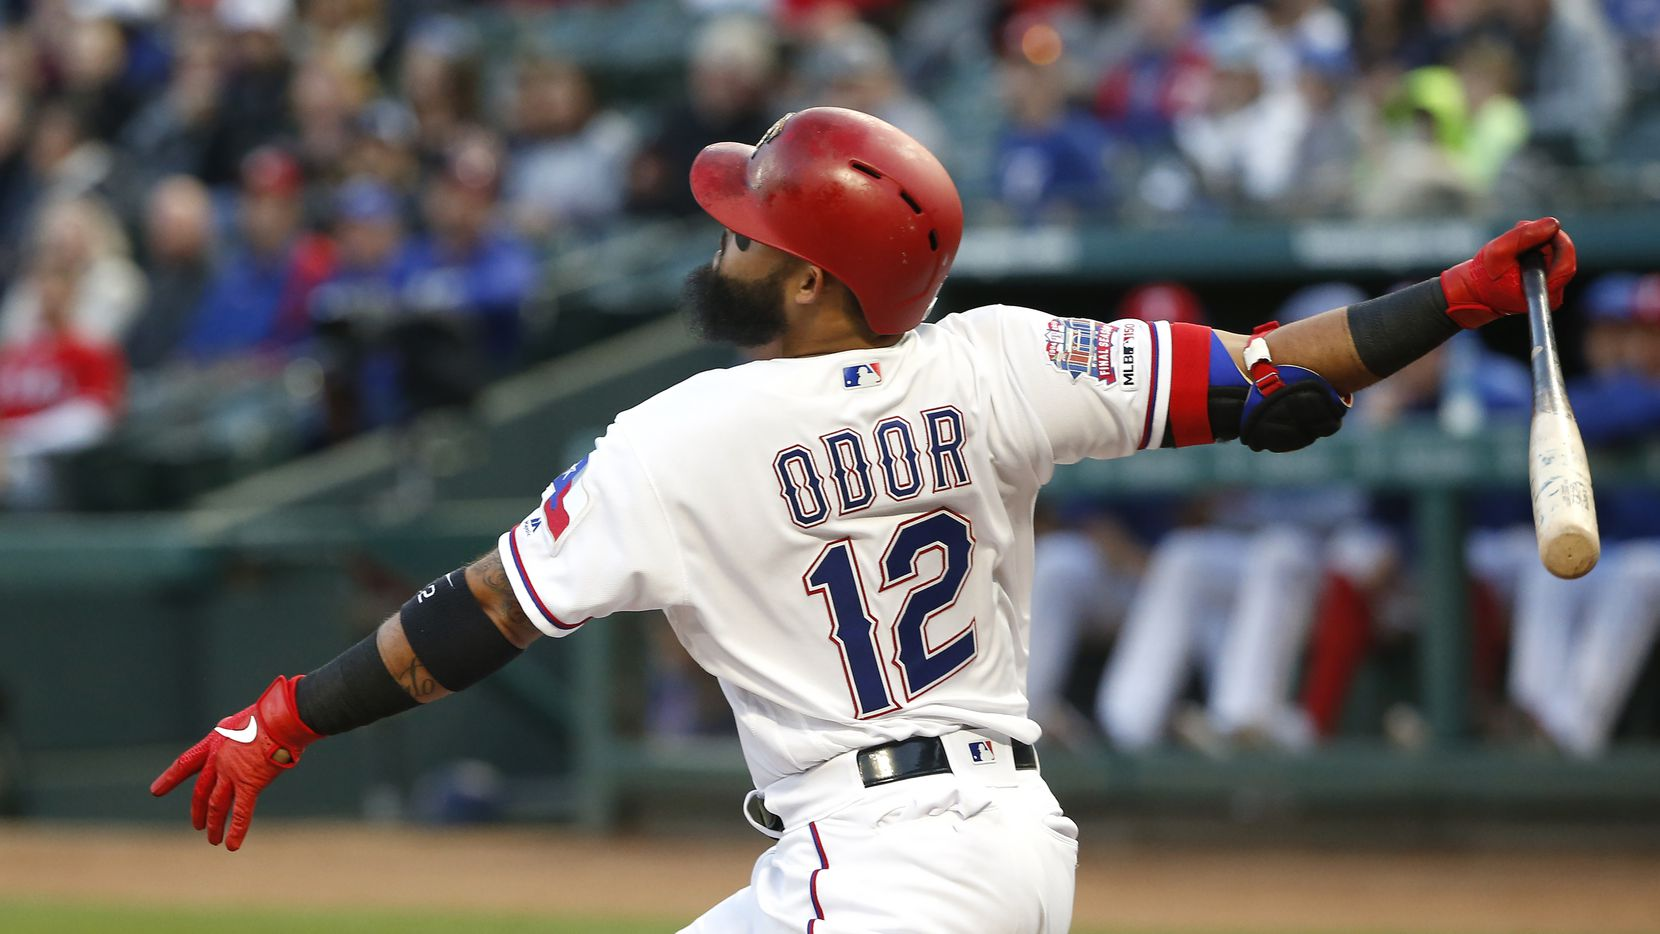 ARLINGTON, TX - APRIL 1: Rougned Odor #12 of the Texas Rangers flies out against the Houston Astros during the first inning at Globe Life Park in Arlington on April 1, 2019 in Arlington, Texas. (Photo by Ron Jenkins/Getty Images)